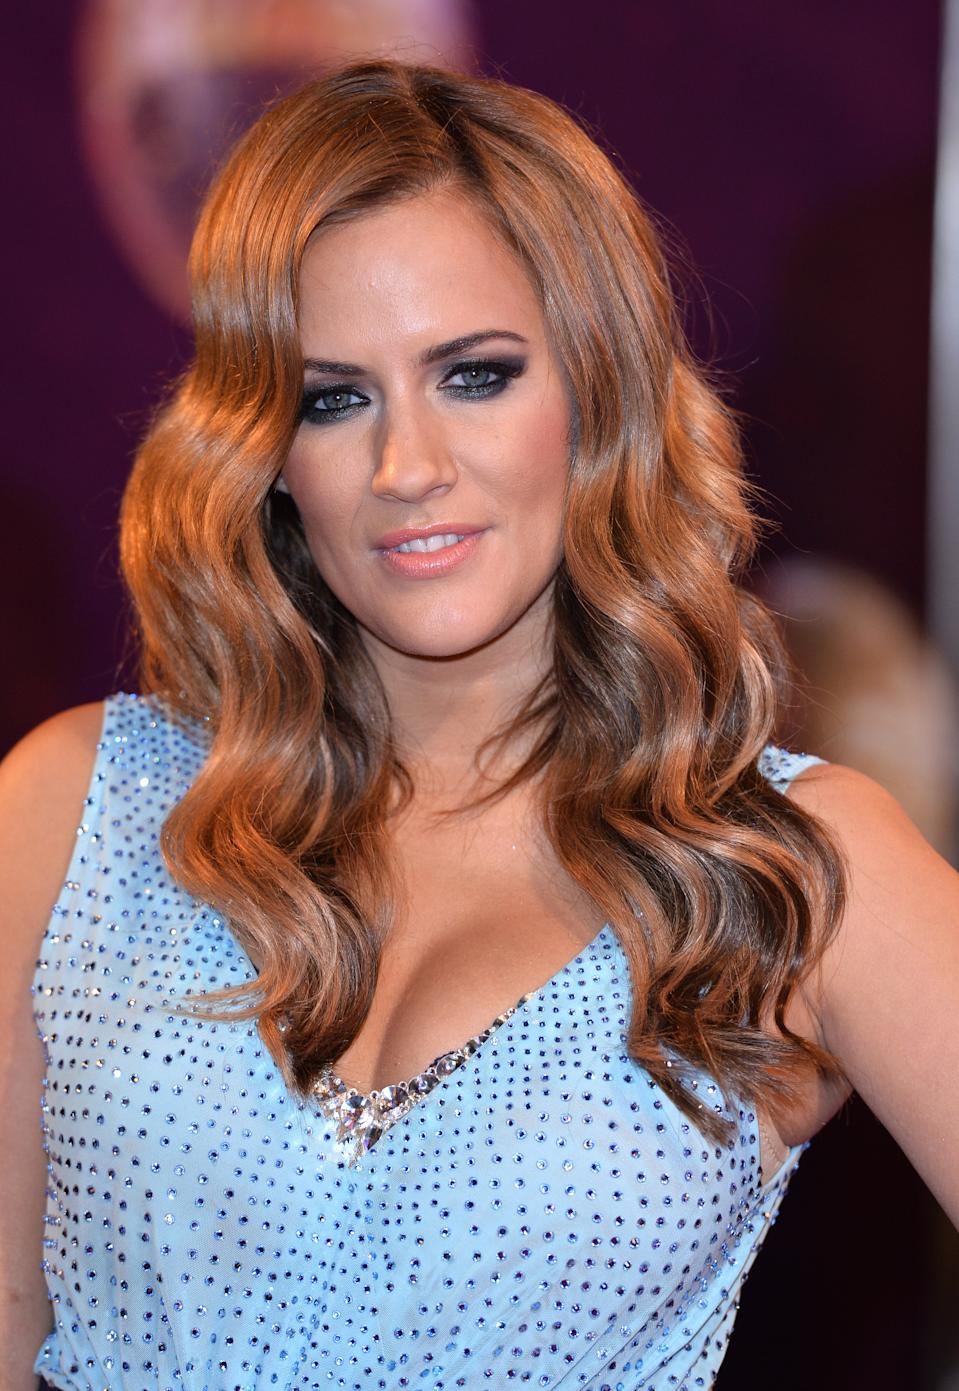 Caroline Flack pictured in 2014, the year she won Strictly Come Dancing in the UK. (Photo by Karwai Tang/WireImage)